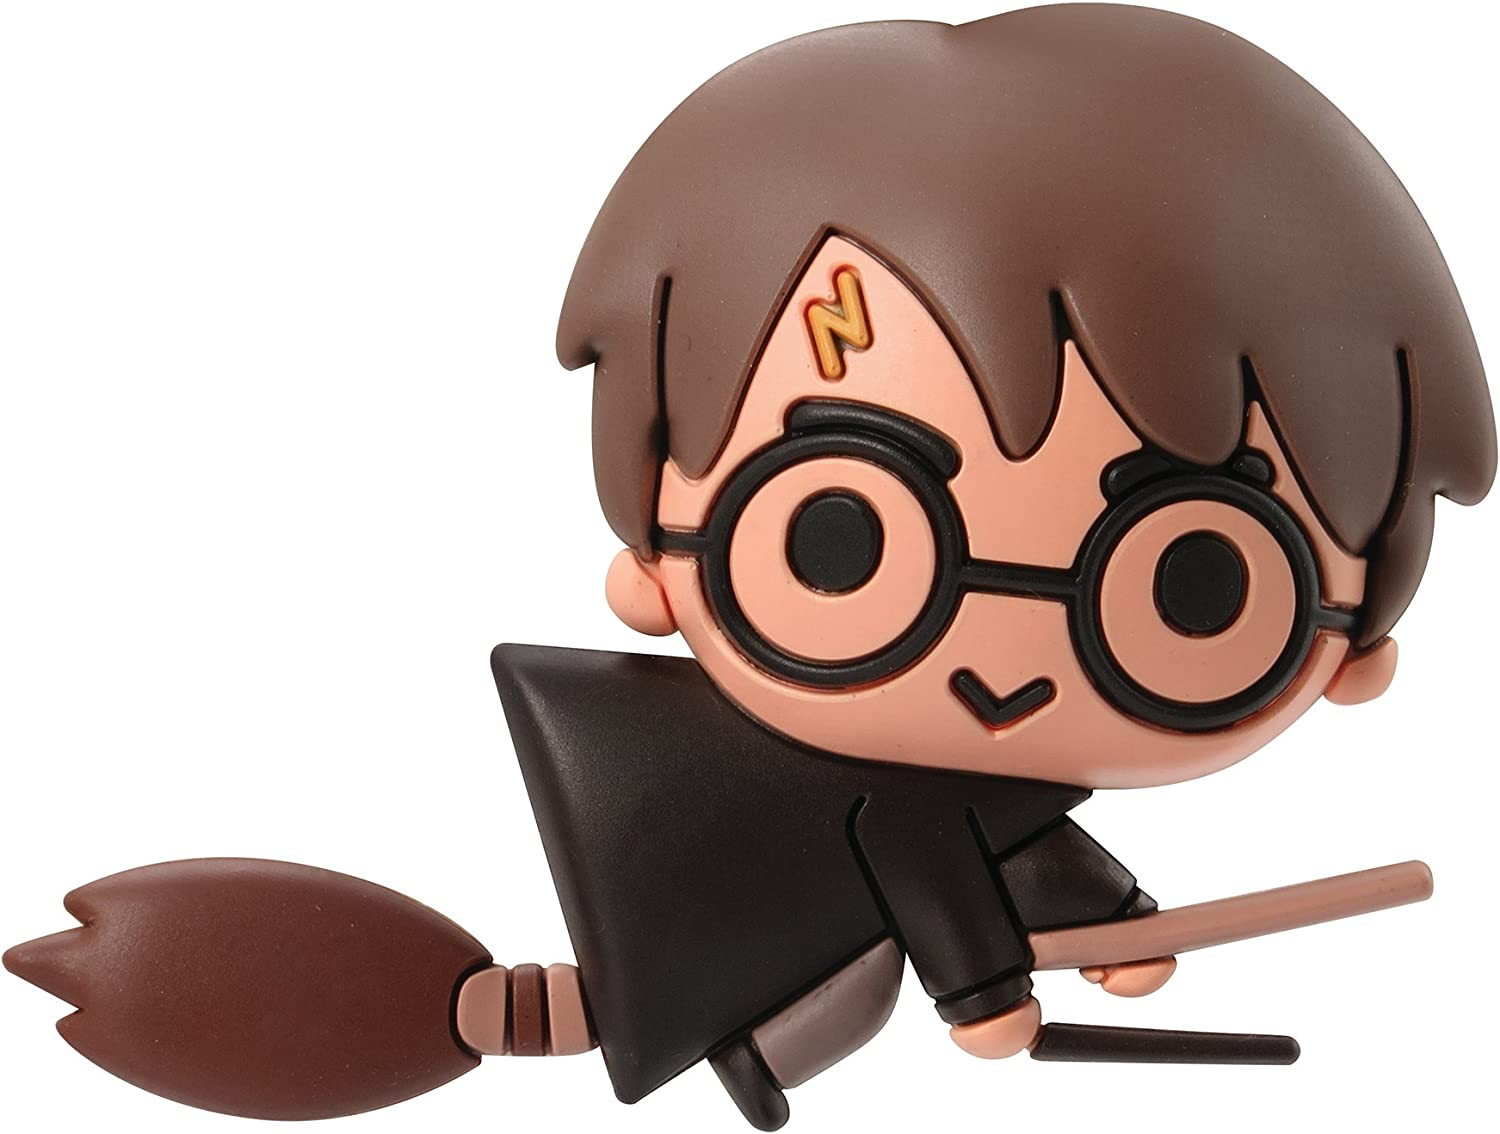 HARRY POTTER Novelty Magnet, Multi Color